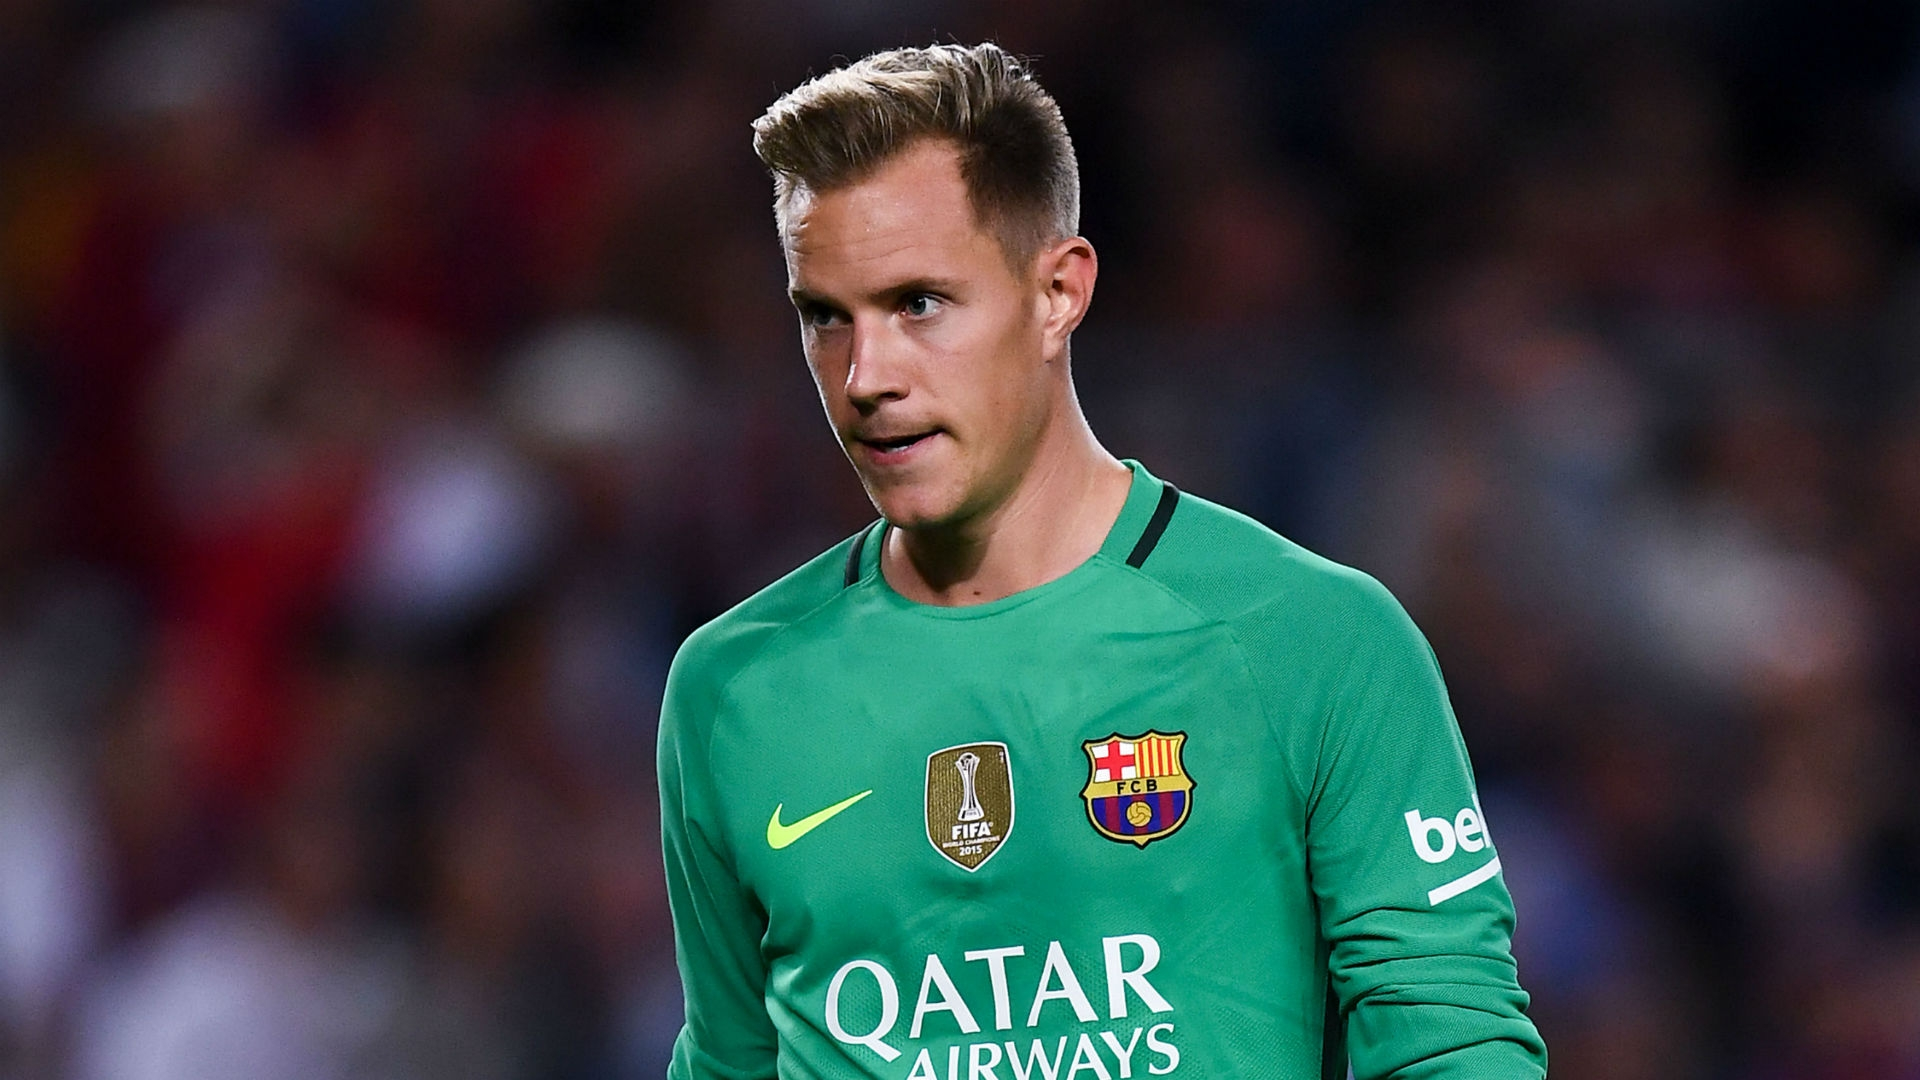 Ter Stegen confirmed for Barcelona until 2022